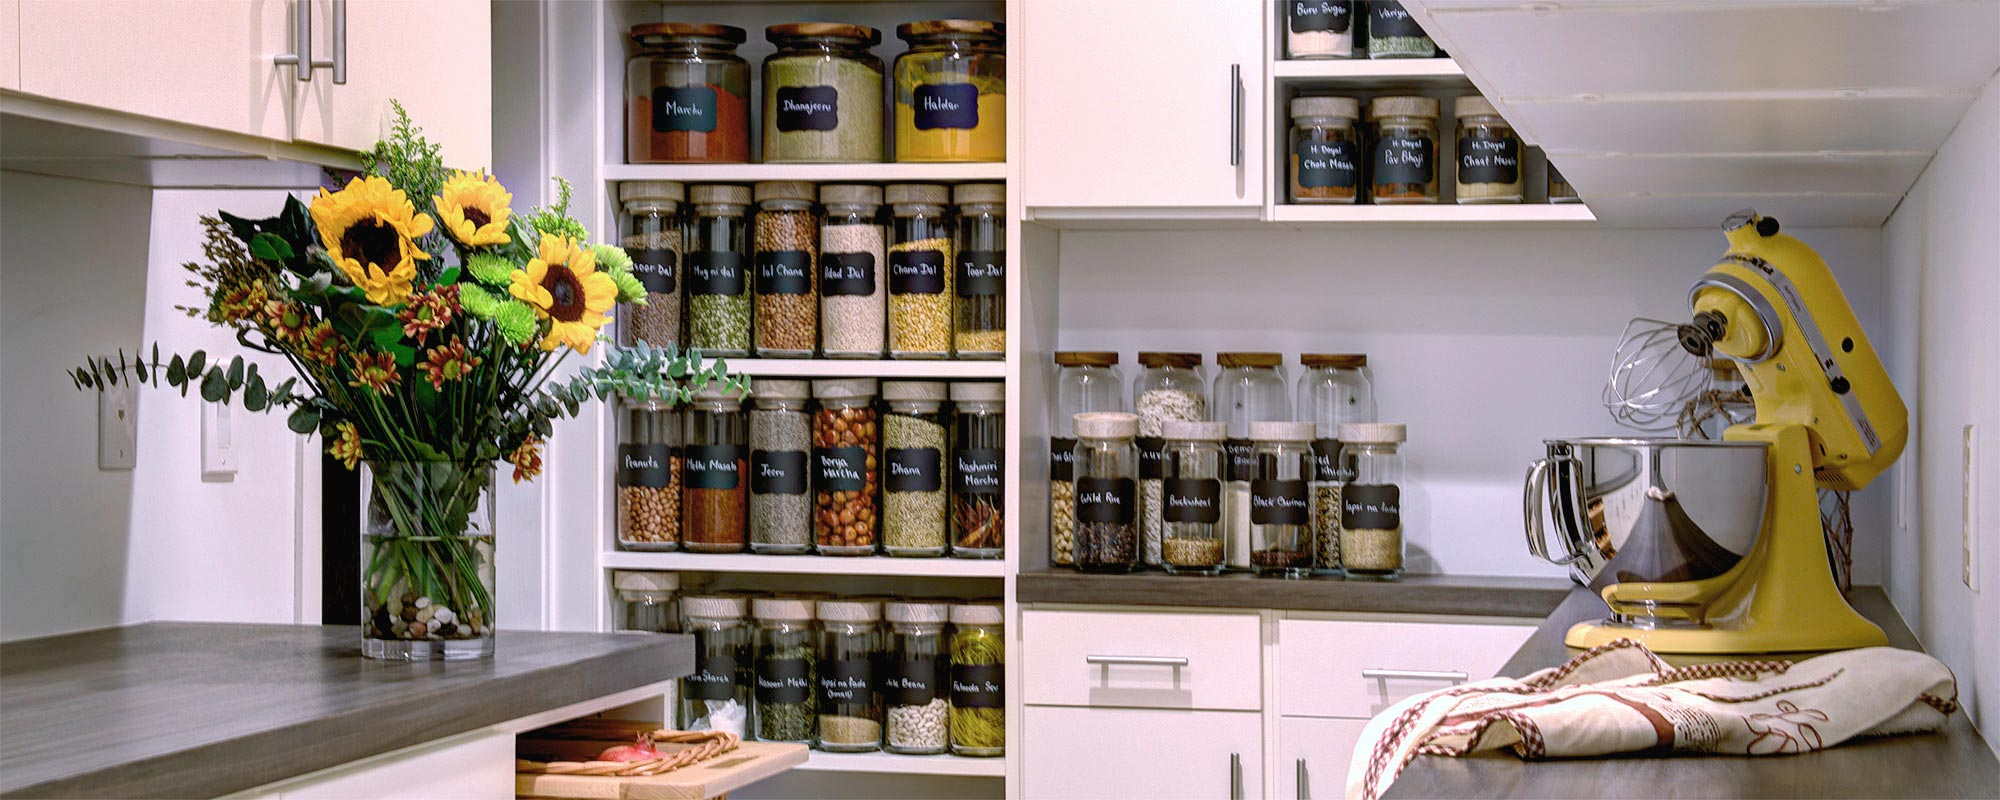 Custom Kitchen Pantry Organization